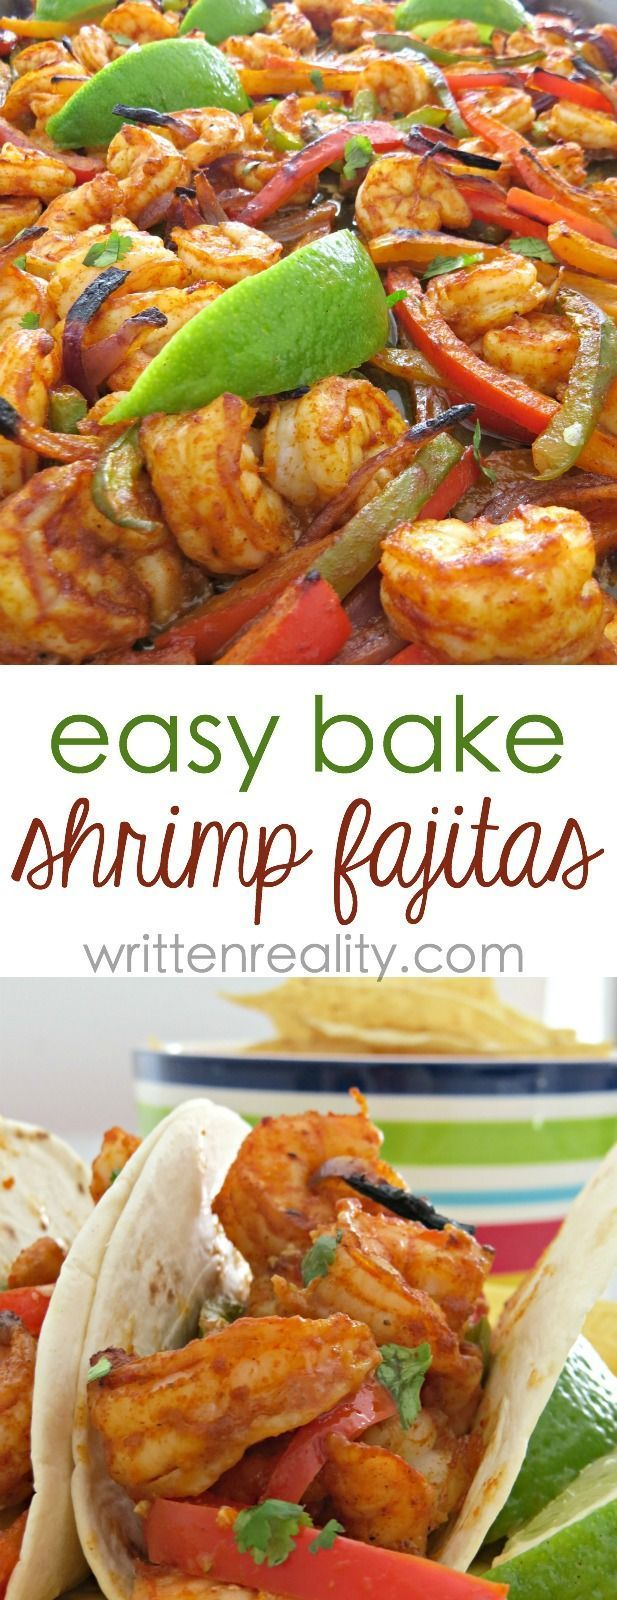 One Sheet Pan Shrimp Fajitas : Here's an easy sheet pan shrimp fajitas recipe that's quick and delicious. Toss vegetables and shrimp in seasonings and bake on one pan.  #food #drink #yummy